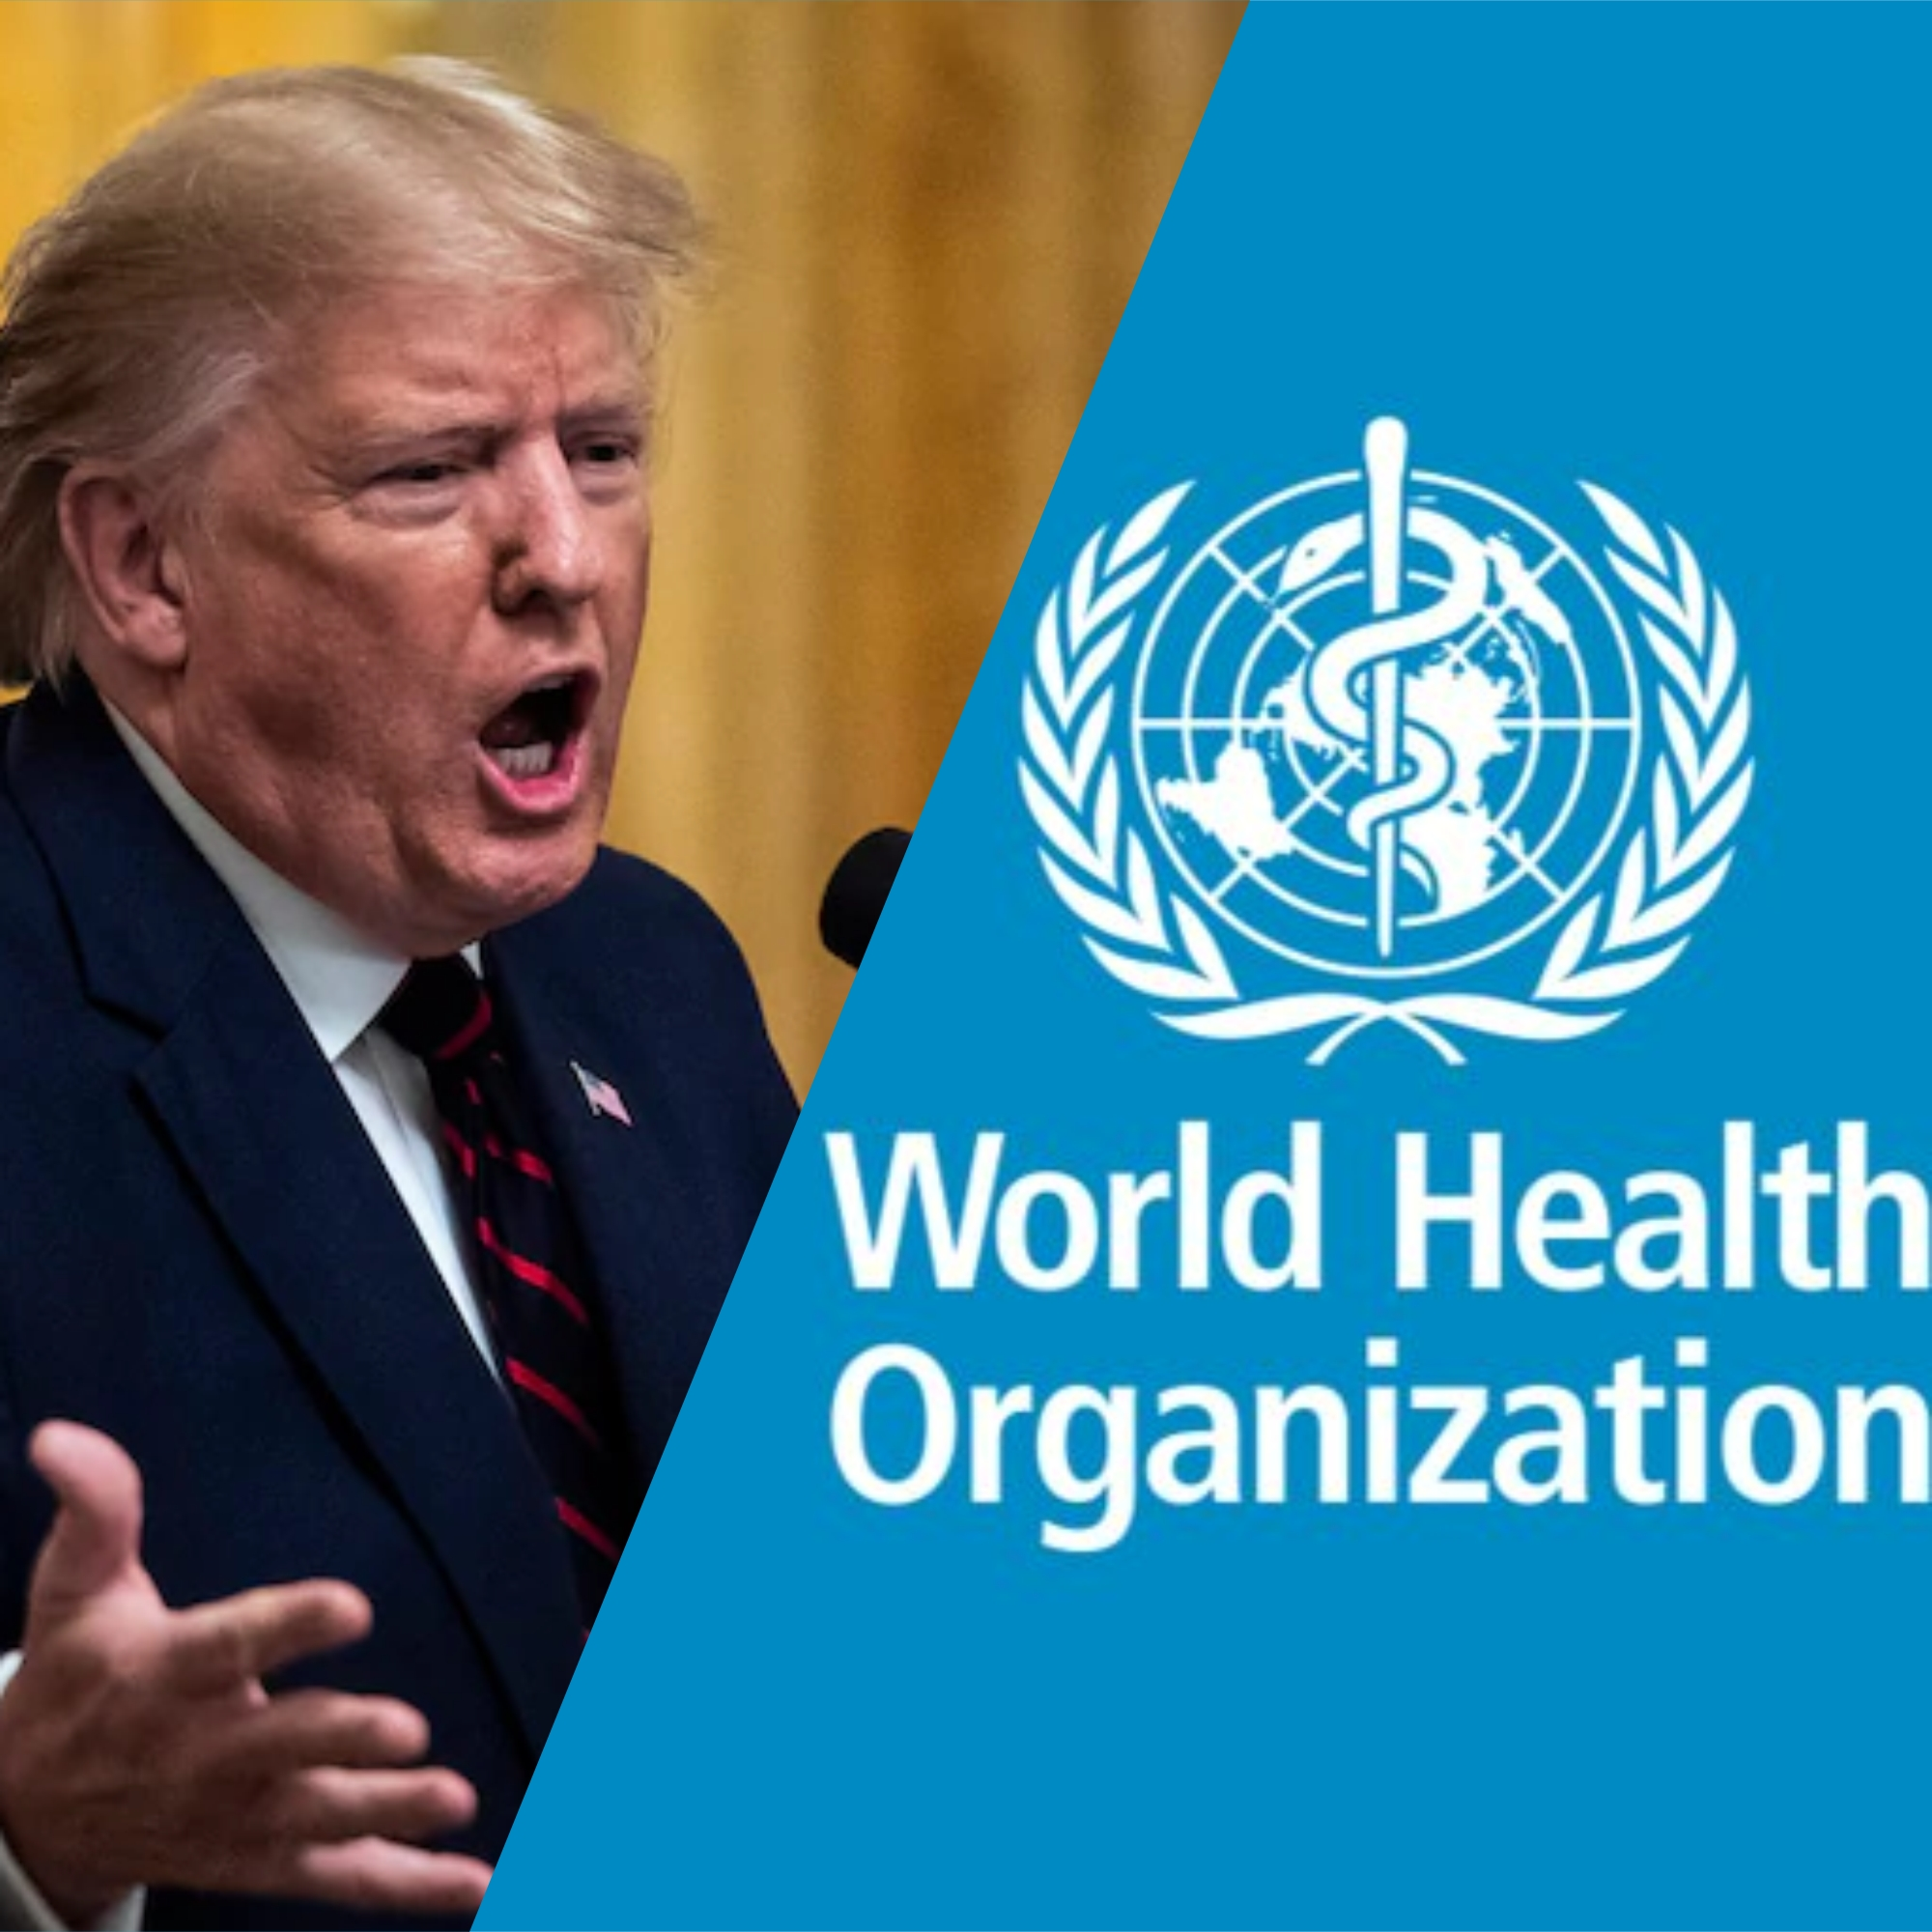 Donald Trump And His Feud With The WHO Amidst The Coronavirus Pandemic